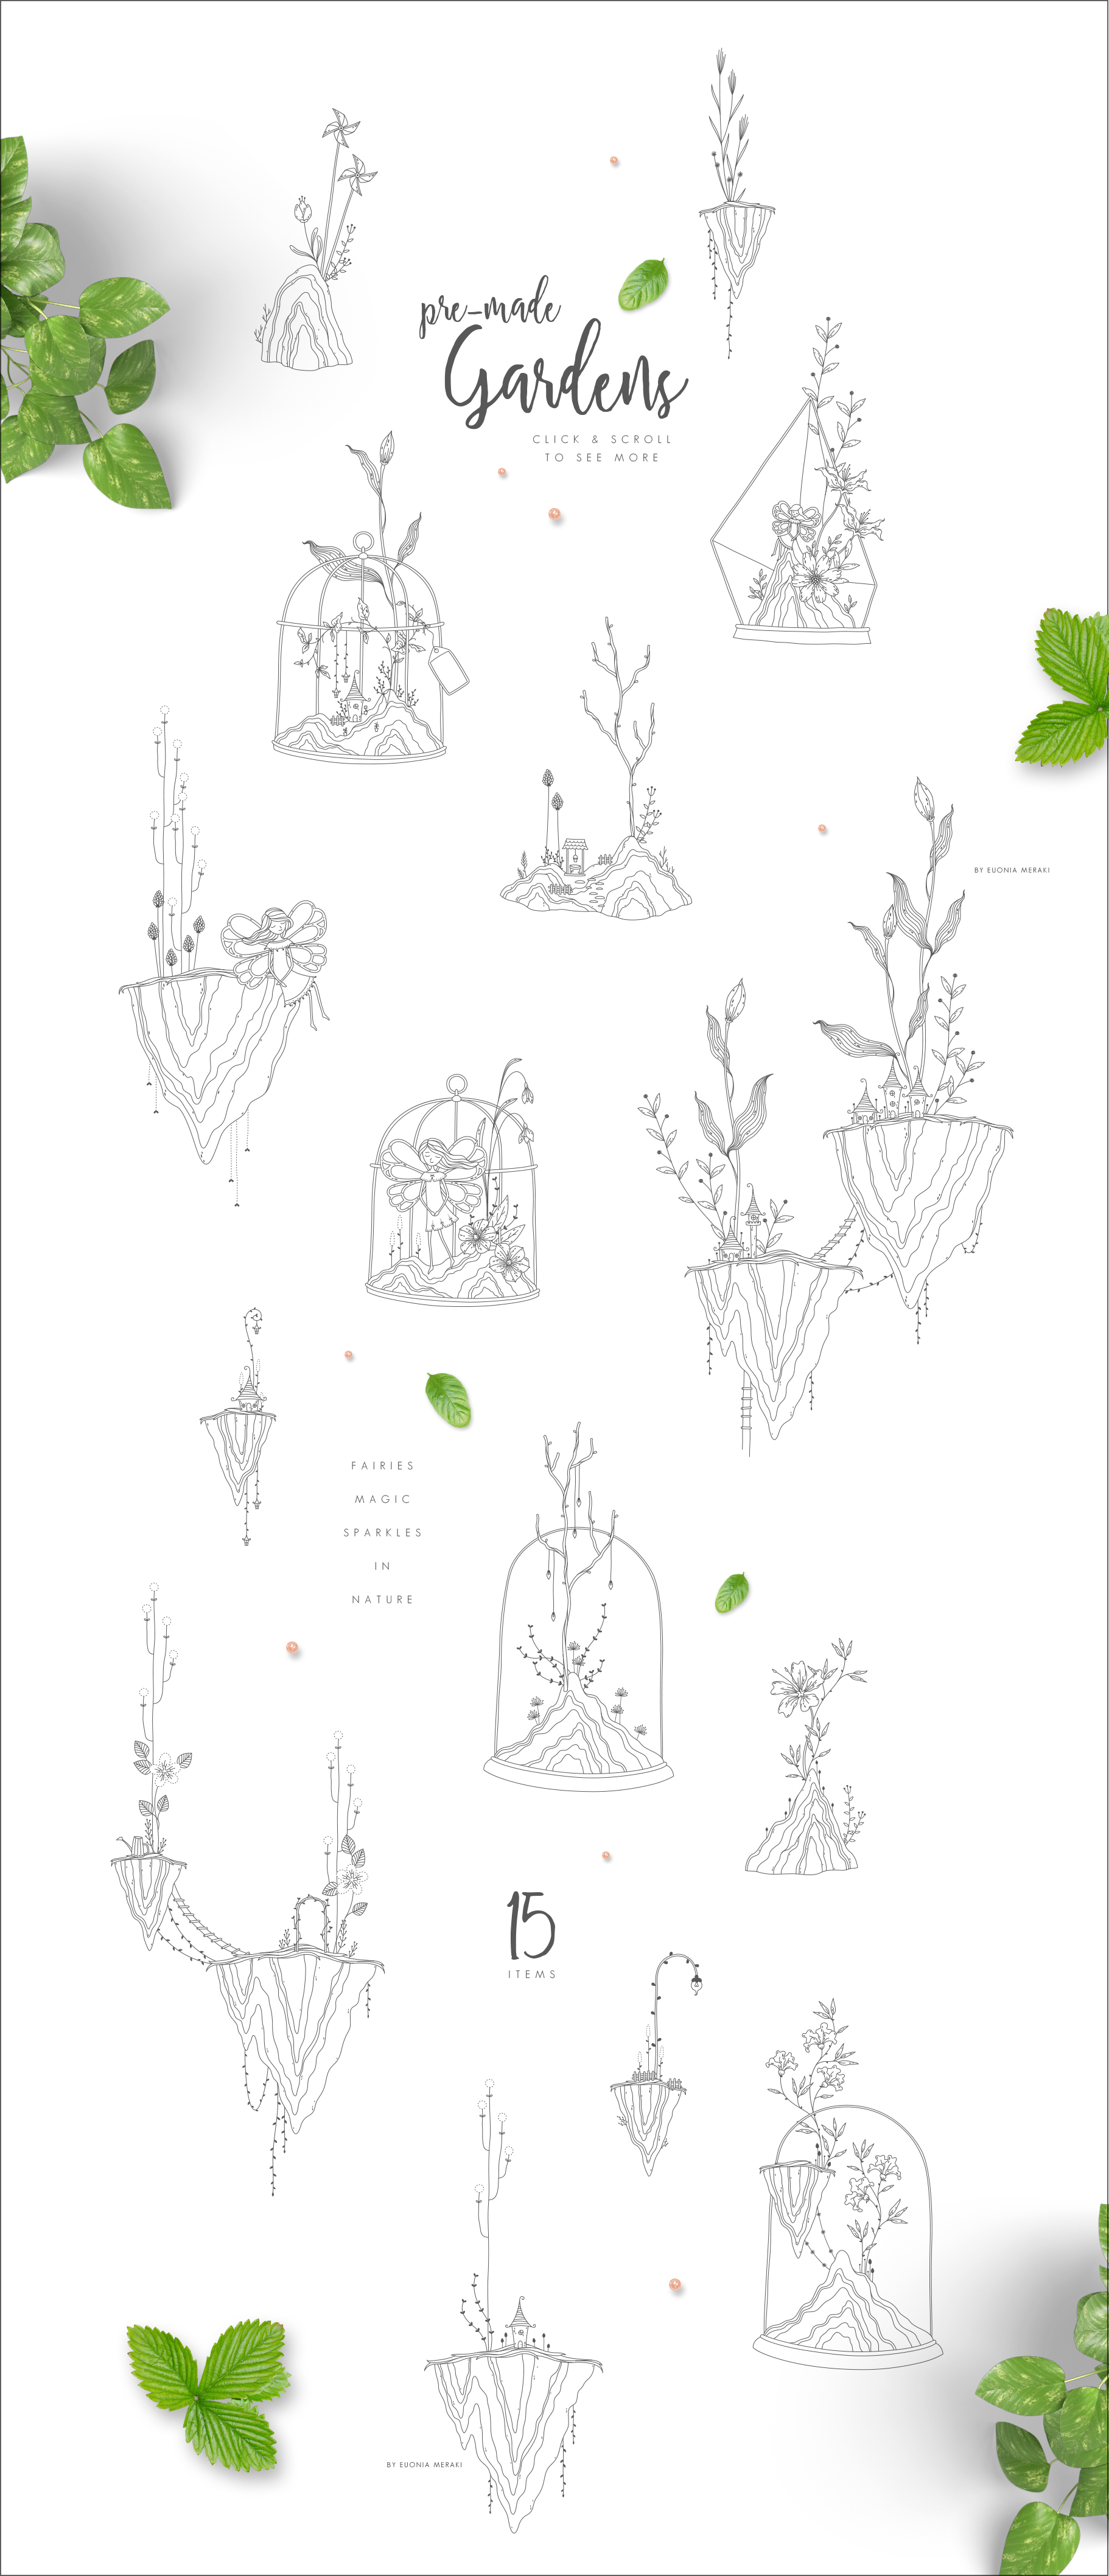 Fairy Garden 2 - Terrarium Kit example image 4